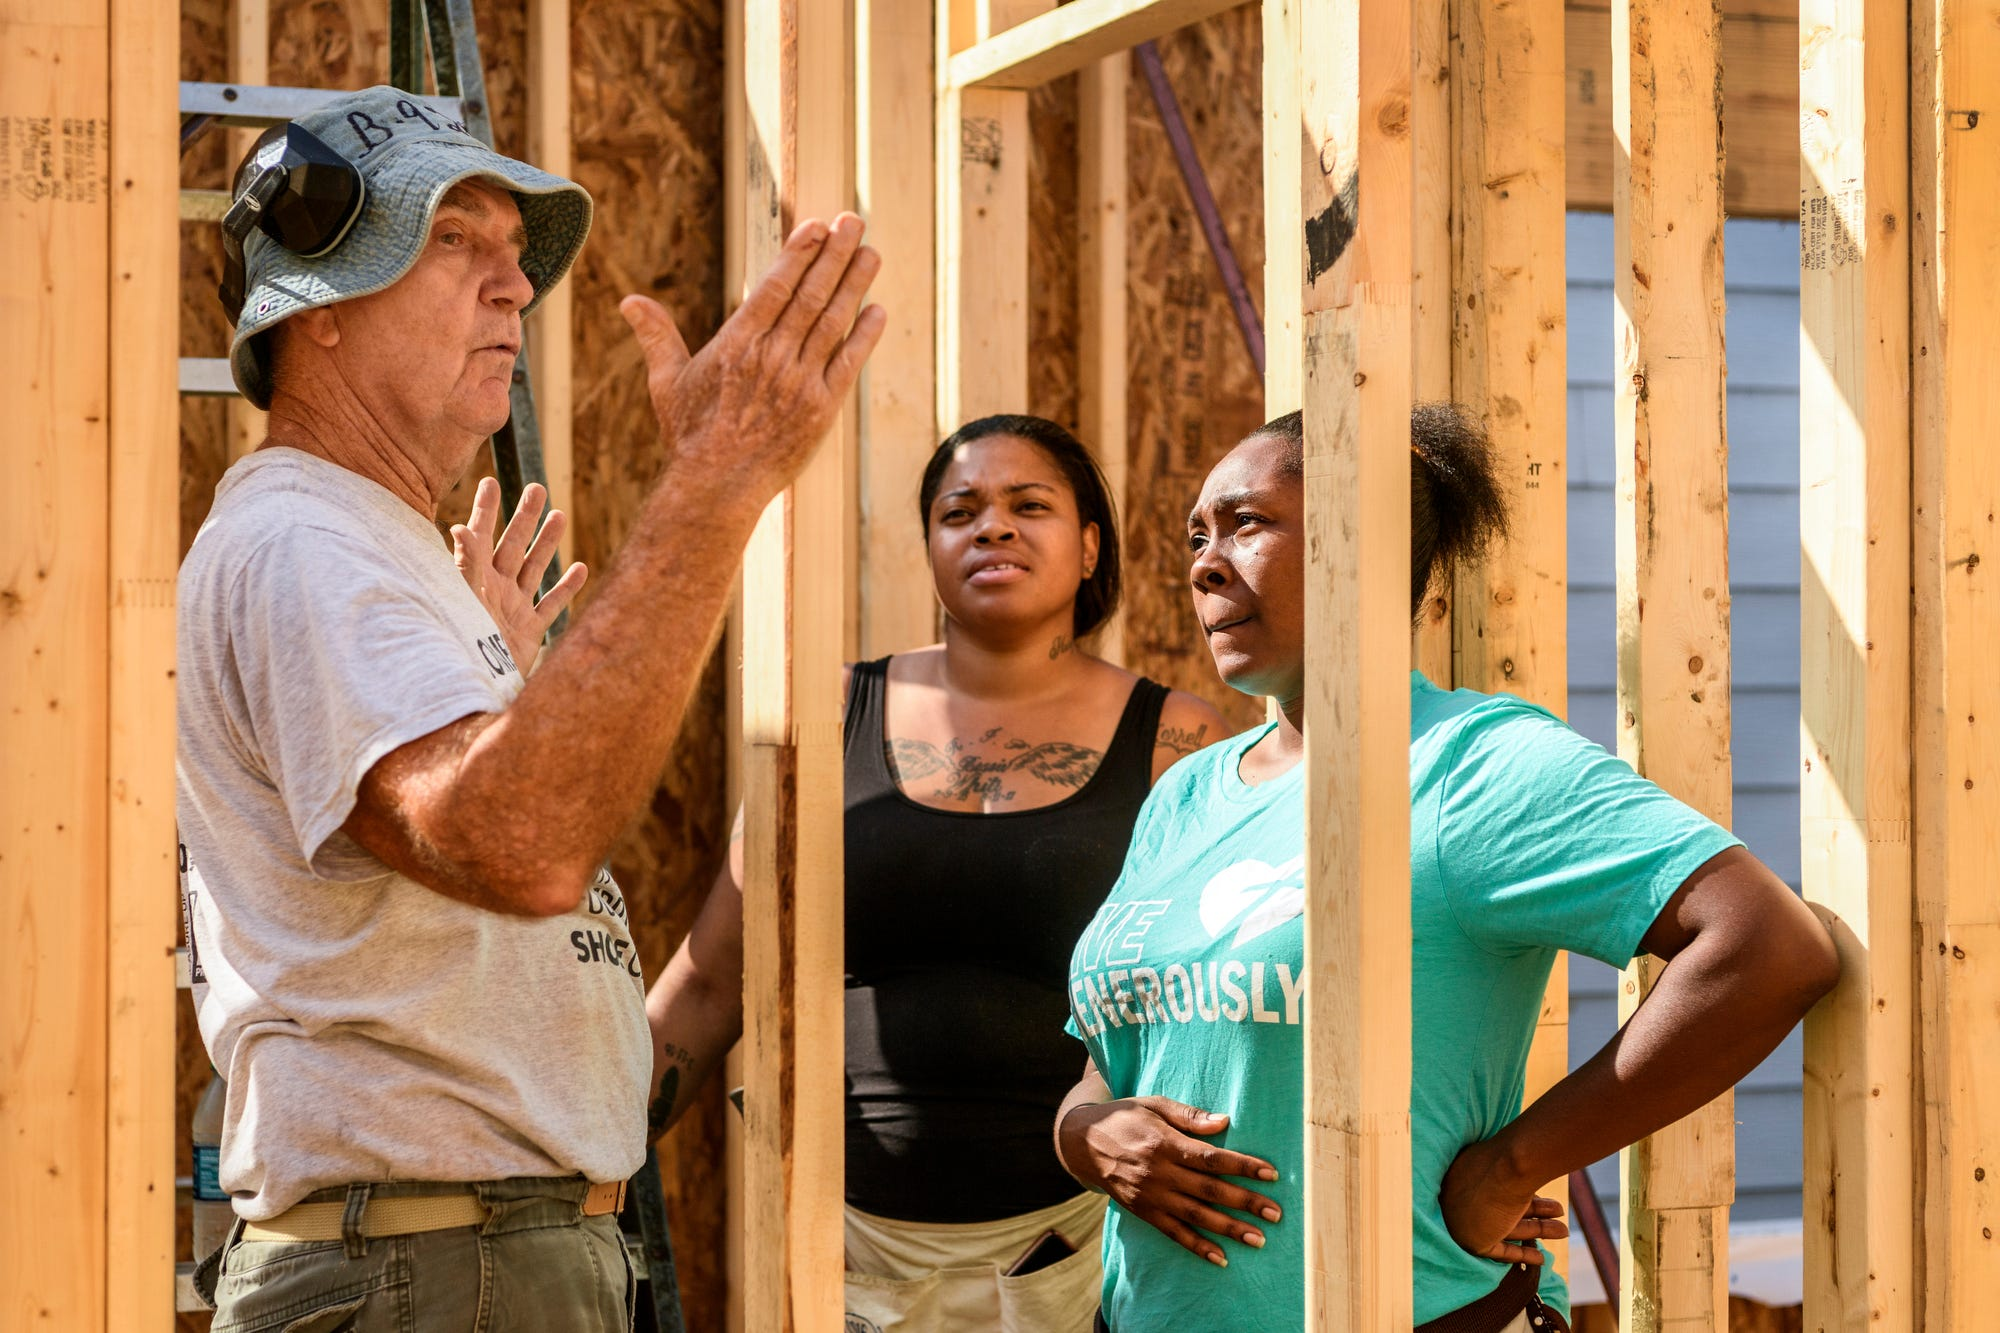 Chris Huus, a member of the Habitat Core Crew, instructs Tiffany Wilson, center, and Tamisha Dilworth, right, as they continue building the walls of Dilworth's house in Evansville's Ballard Neighborhood, Tuesday morning, Oct. 2, 2018. Wilson, who was named the 497th Habitat homeowner, and her family live down the street from Dilworth on Bedford Avenue.